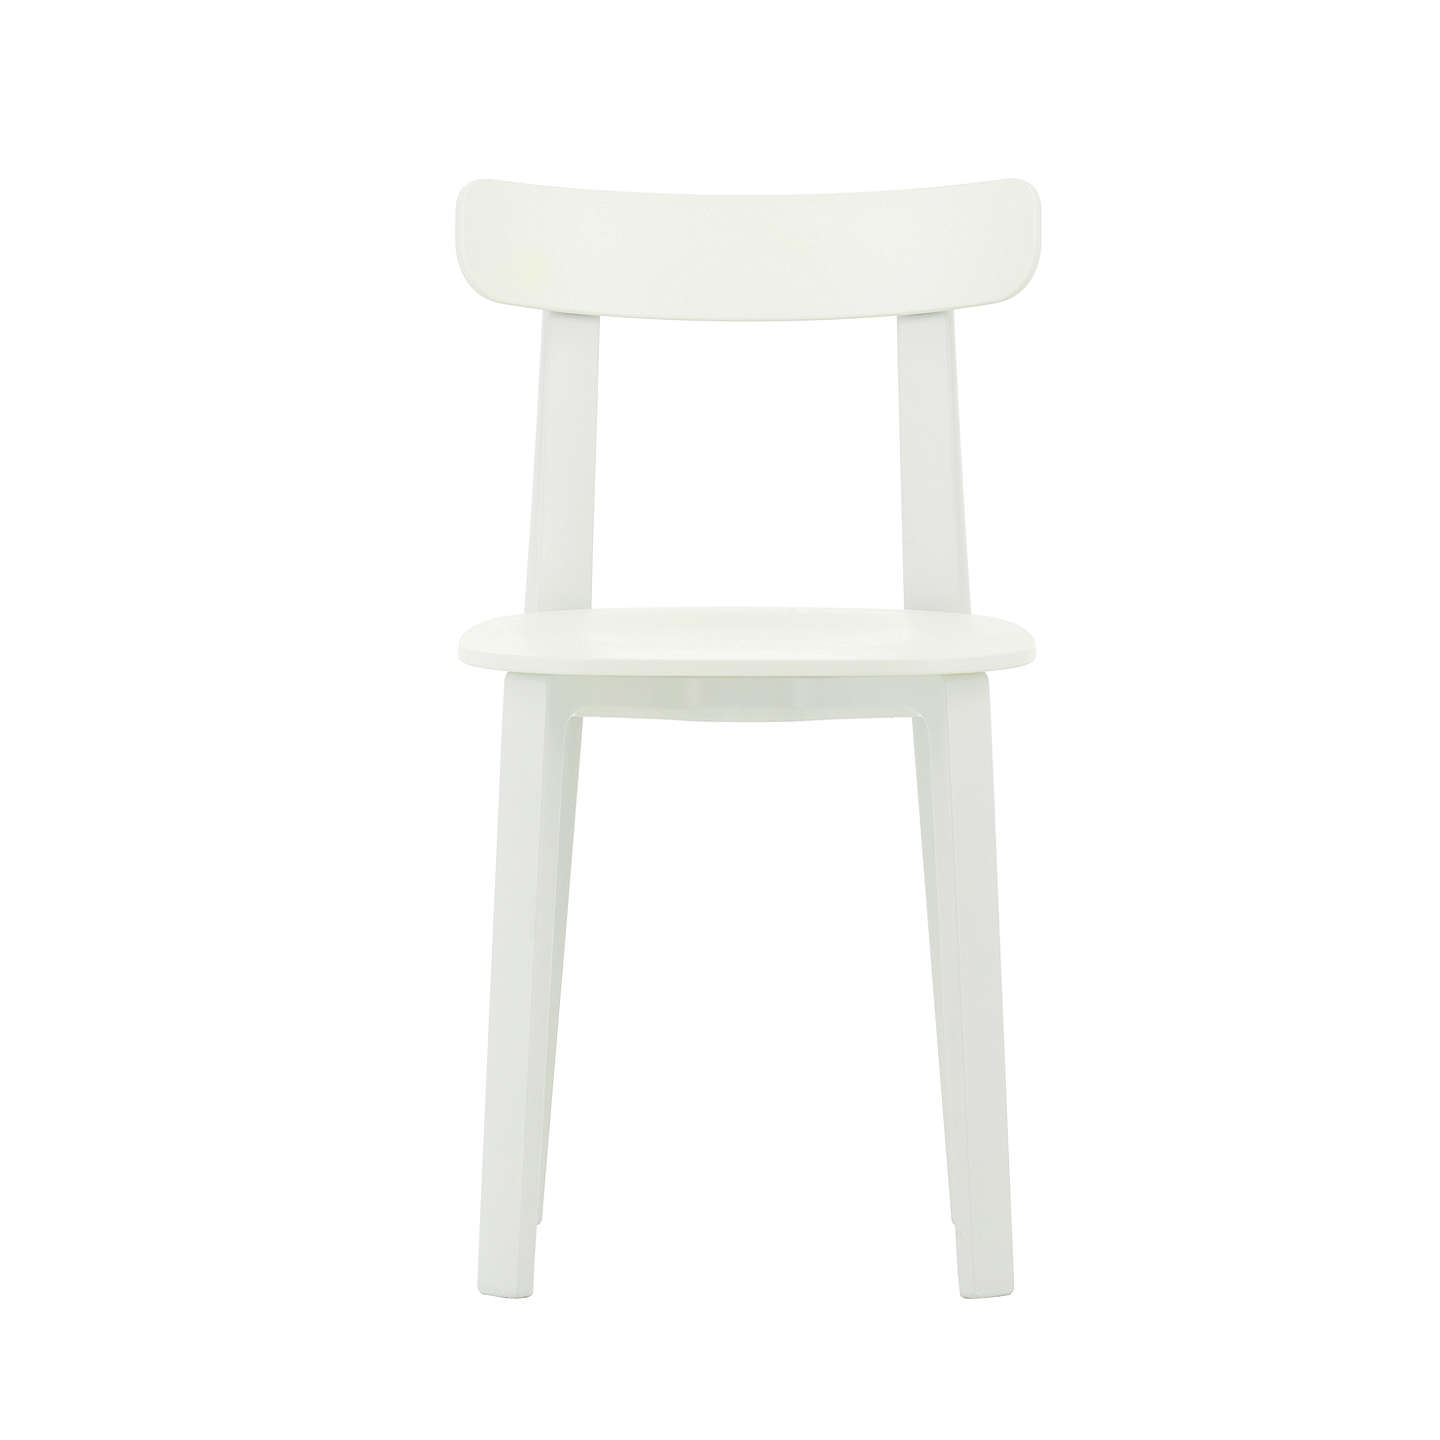 BuyVitra All Plastic Chair, Set of 2, White Online at johnlewis.com